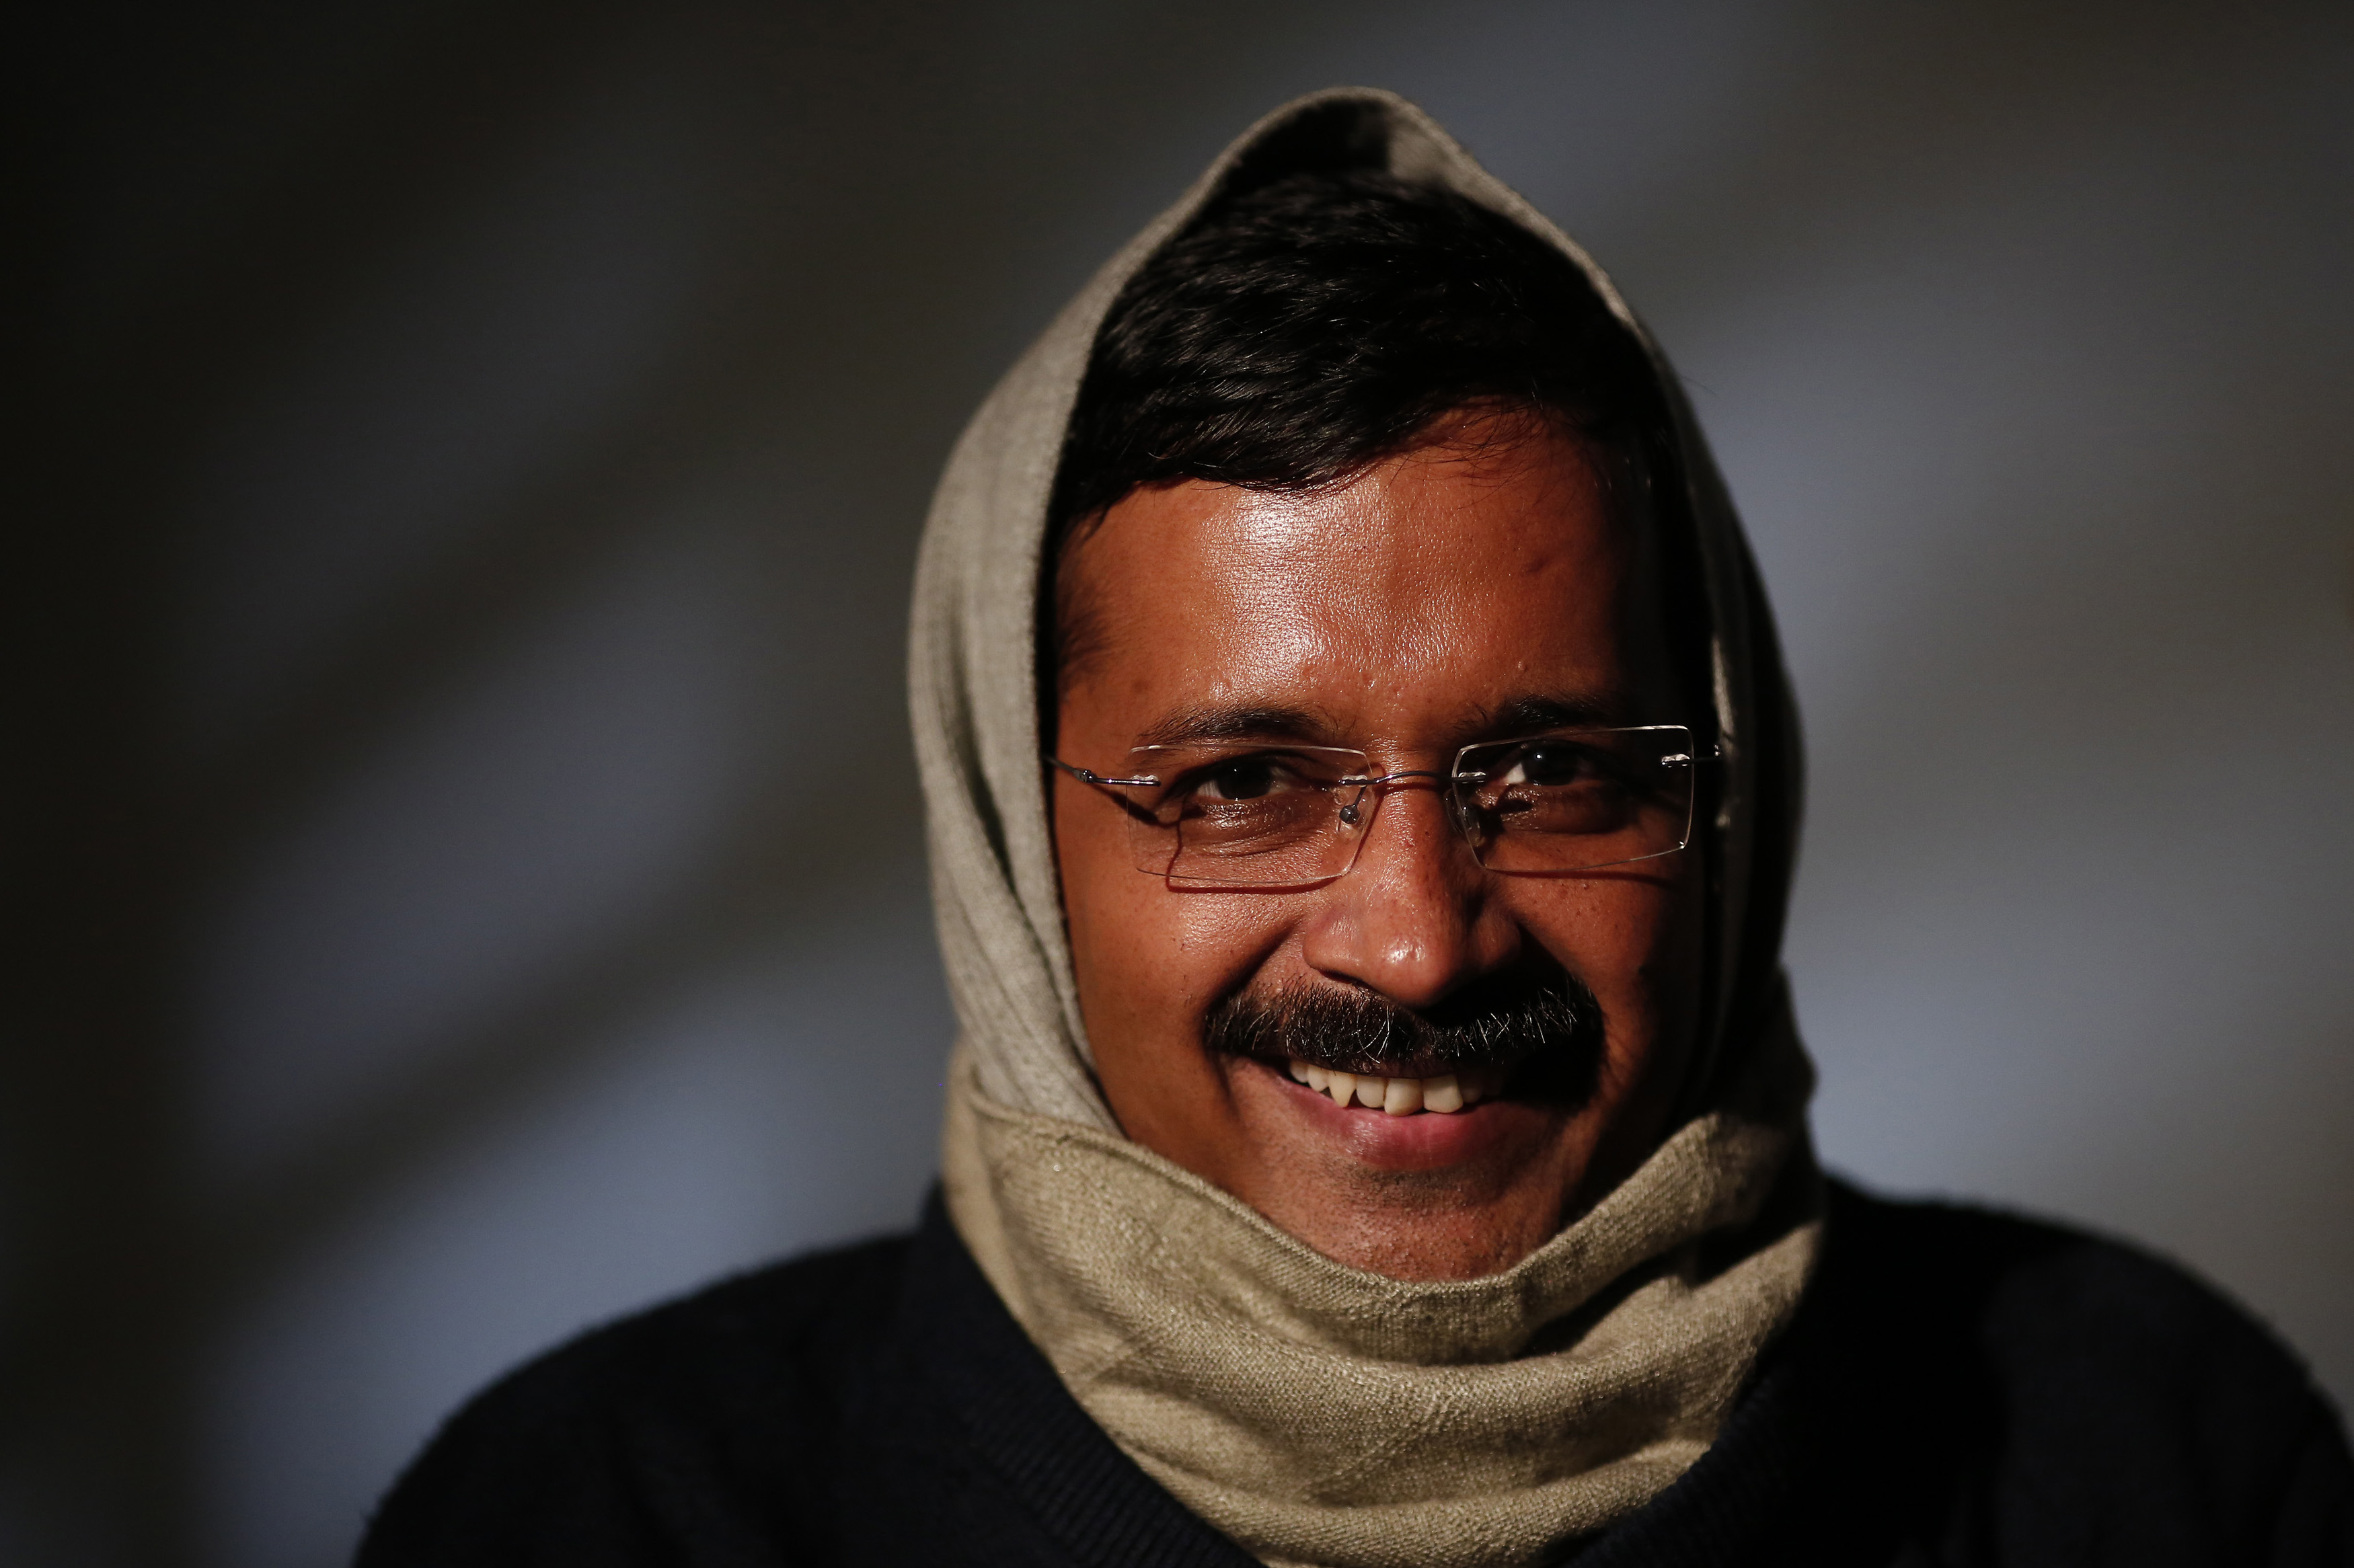 Delhi's Chief Minister Arvind Kejriwal, chief of the Aam Aadmi (Common Man) Party (AAP), smiles during an interview with Reuters at his residence on the outskirts of New Delhi January 27, 2014. The young anti-graft party that stormed to power in India's capital last month plans to field at least 73 candidates in national elections due by May to stand against politicians accused of crimes, its founder said on Monday. Following its strong performance in Delhi, interest in the year-old Aam Aadmi Party (AAP) has surged. Since an announcement earlier this month that it would contest the general election, its membership has passed 10 million. Picture taken January 27, 2014. REUTERS/Adnan Abidi (INDIA - Tags: POLITICS HEADSHOT) - RTX17XTW